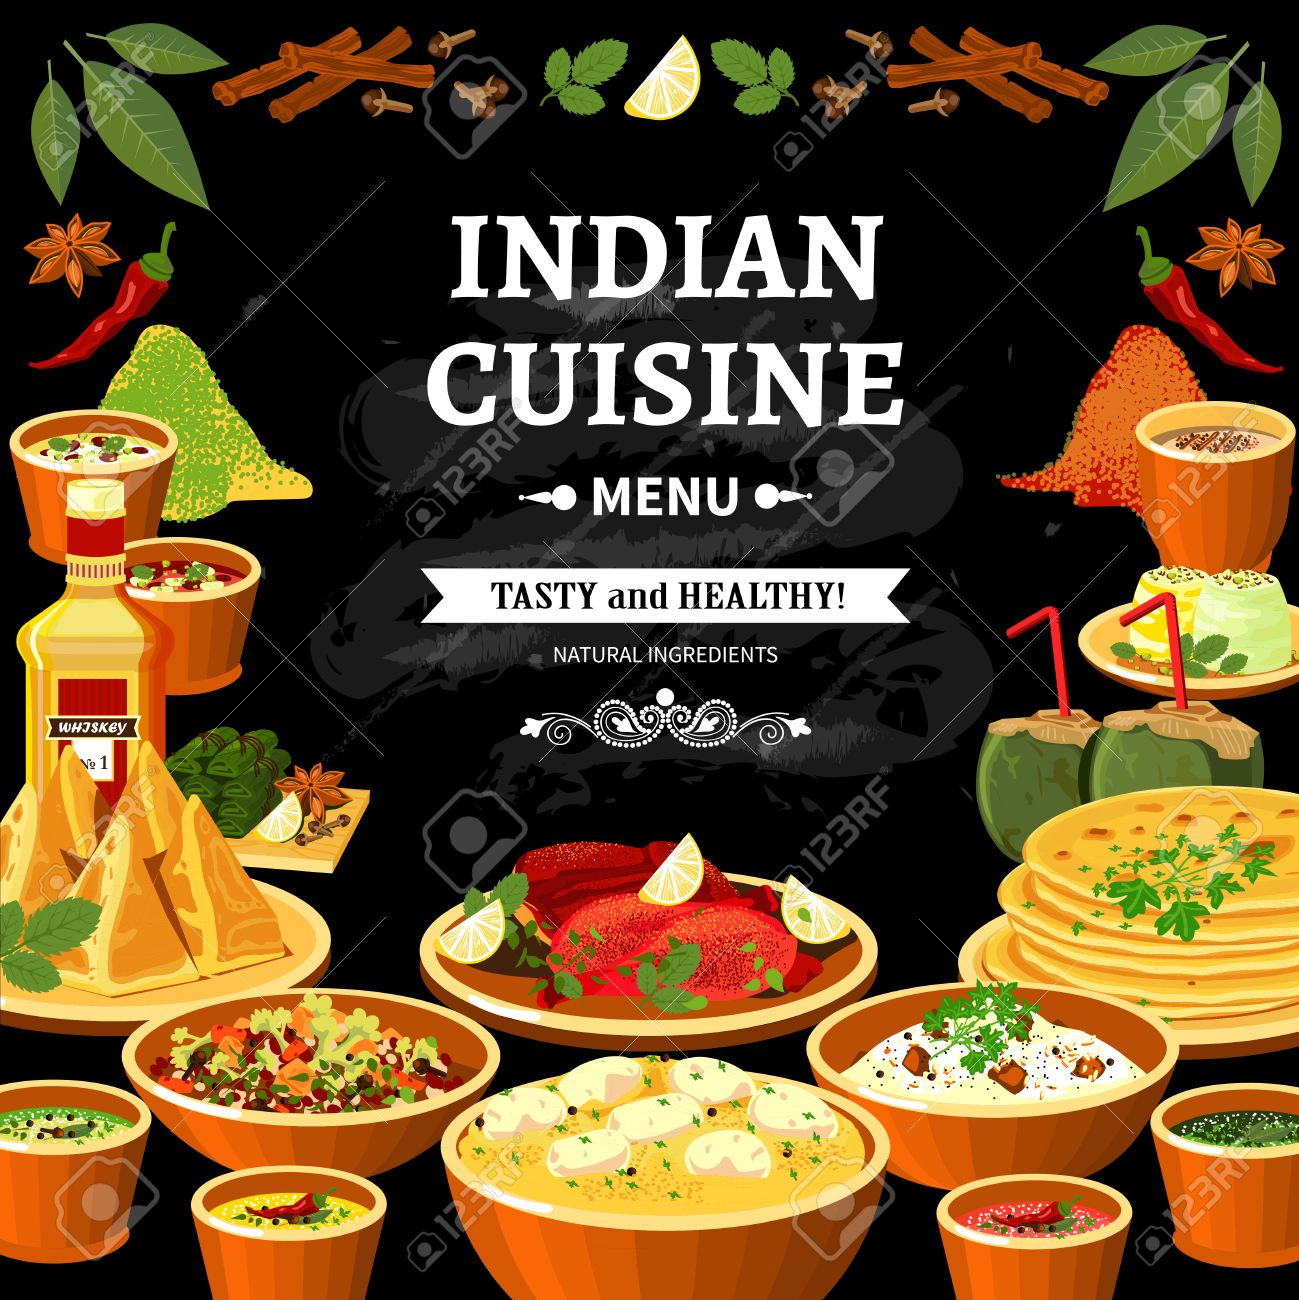 Poster Cuisine Indian Cuisine Restaurant Menu Black Board Poster With Colorful